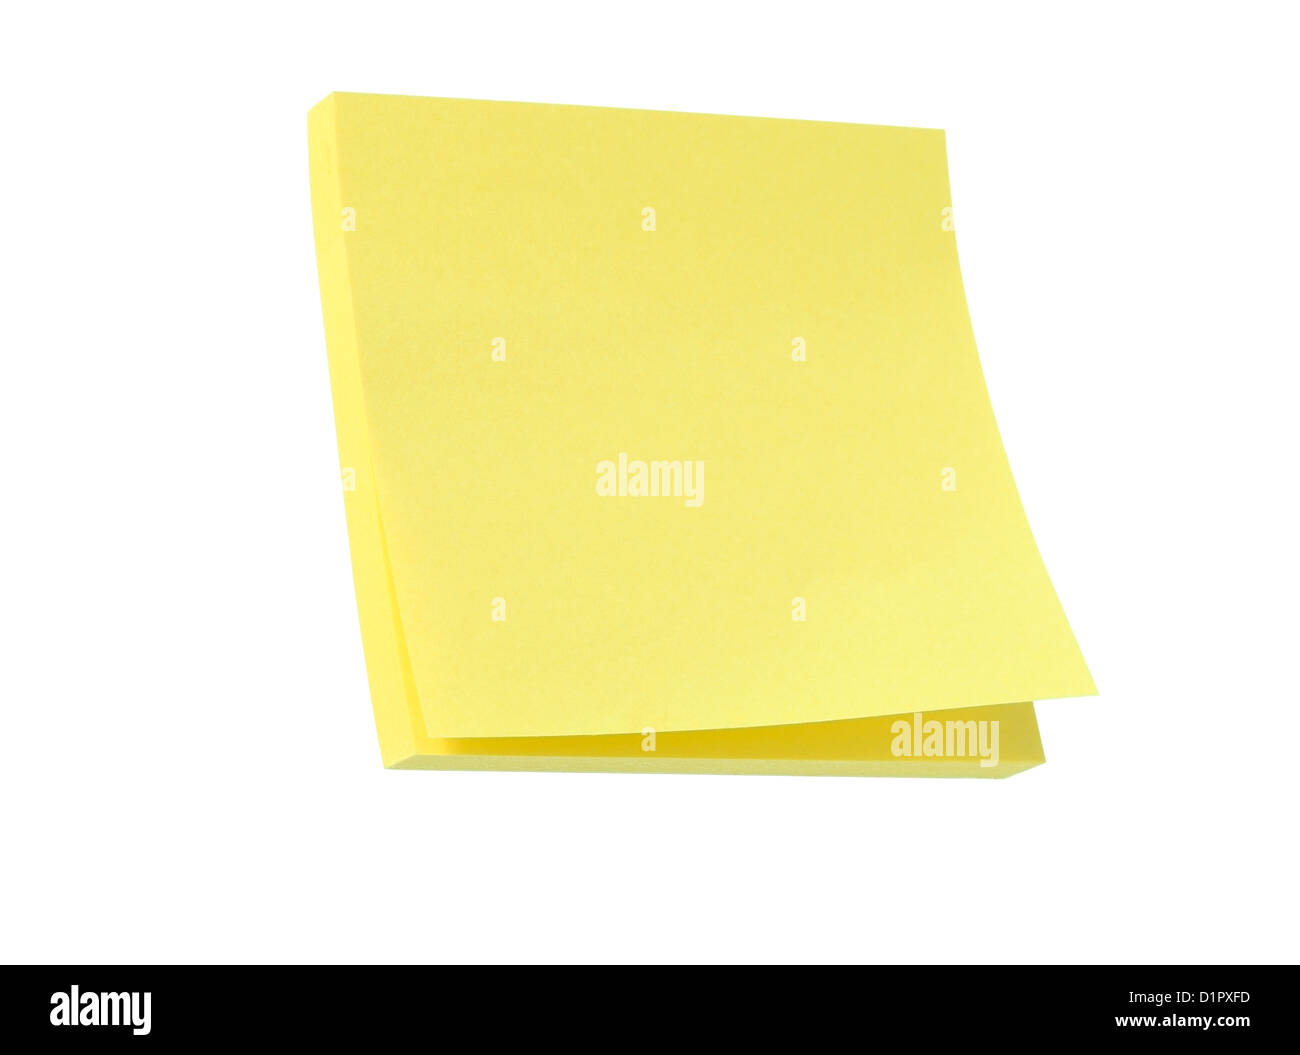 Yellow post it note pad isolated on white - Stock Image